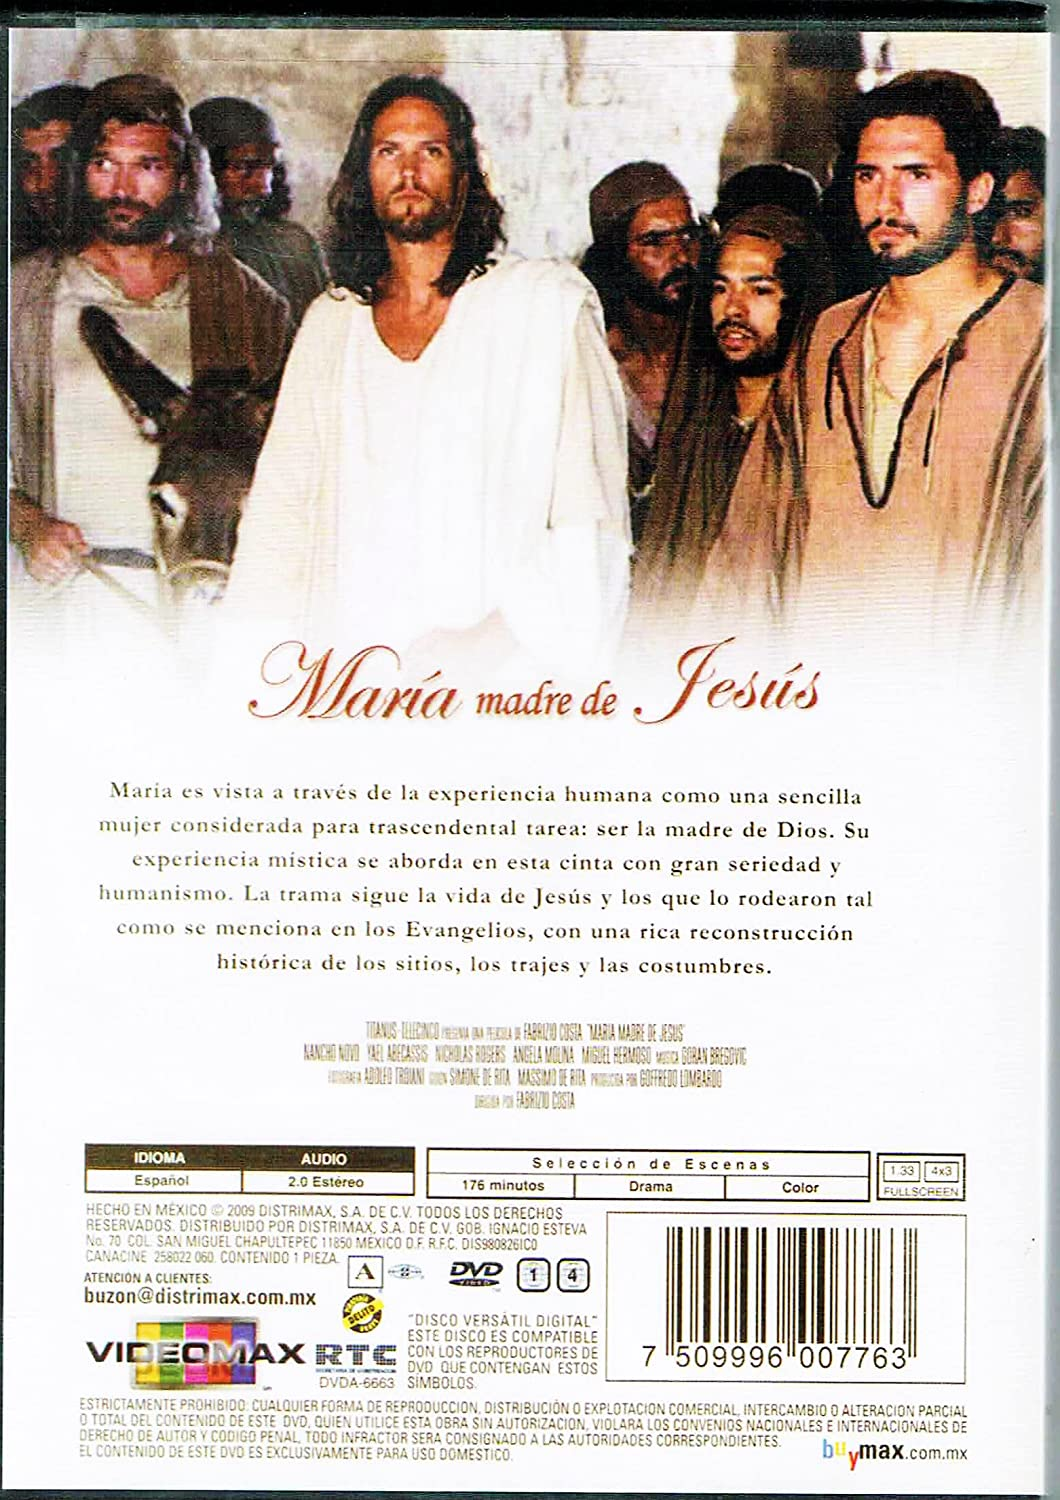 Amazon.com: MARIA MADRE DE JESUS: Movies & TV